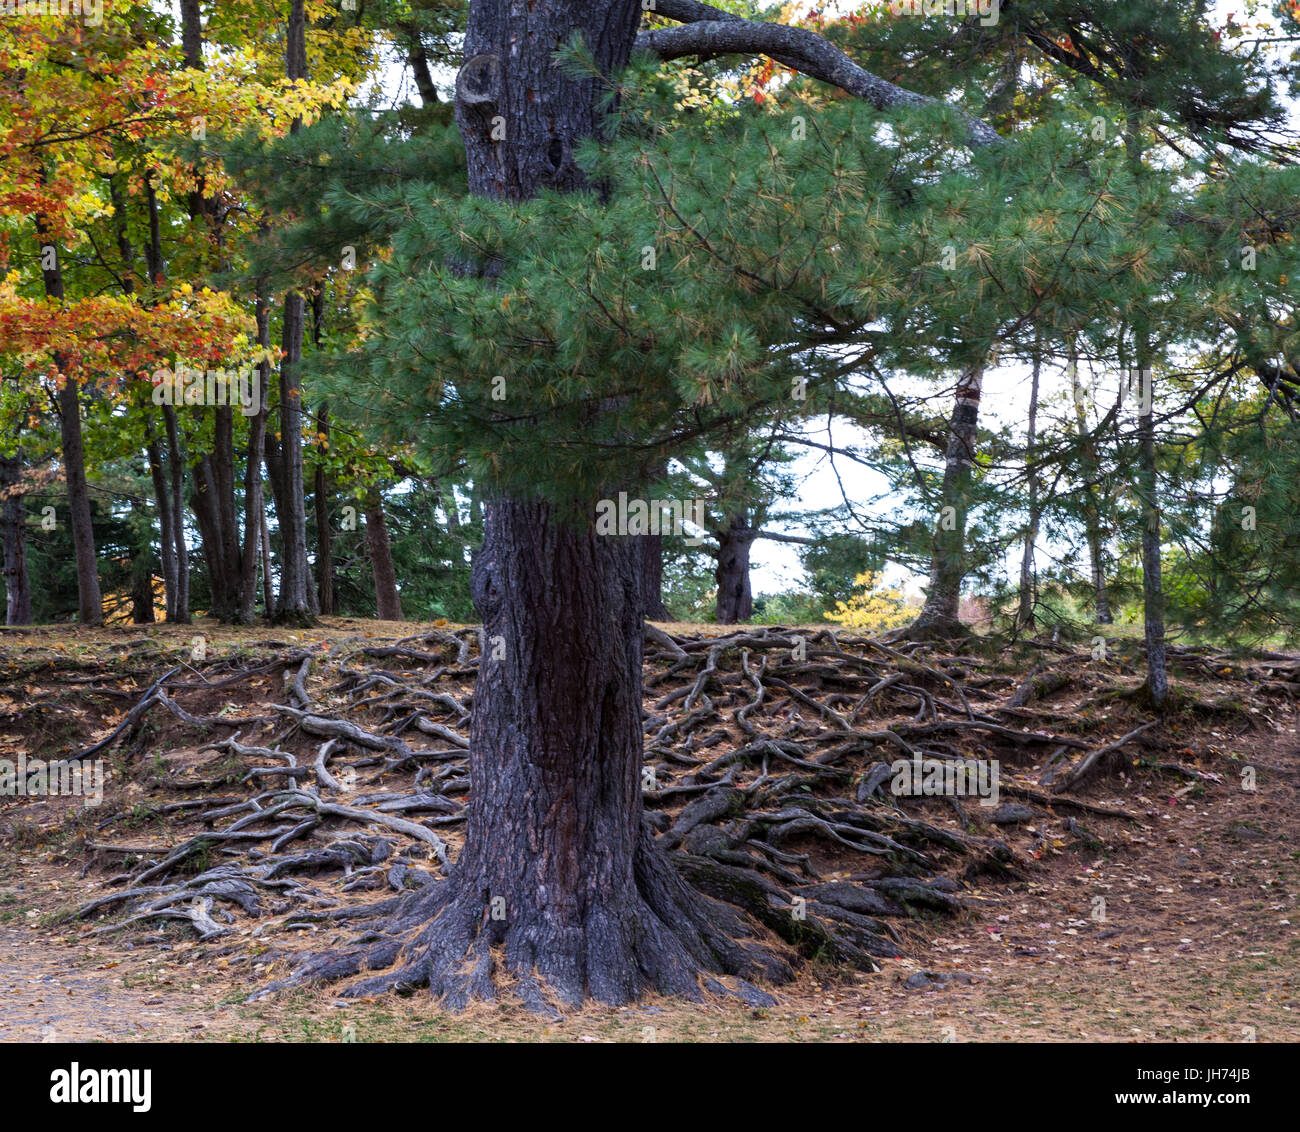 Large evergreen tree with intricate pattern of above ground roots - Stock Image